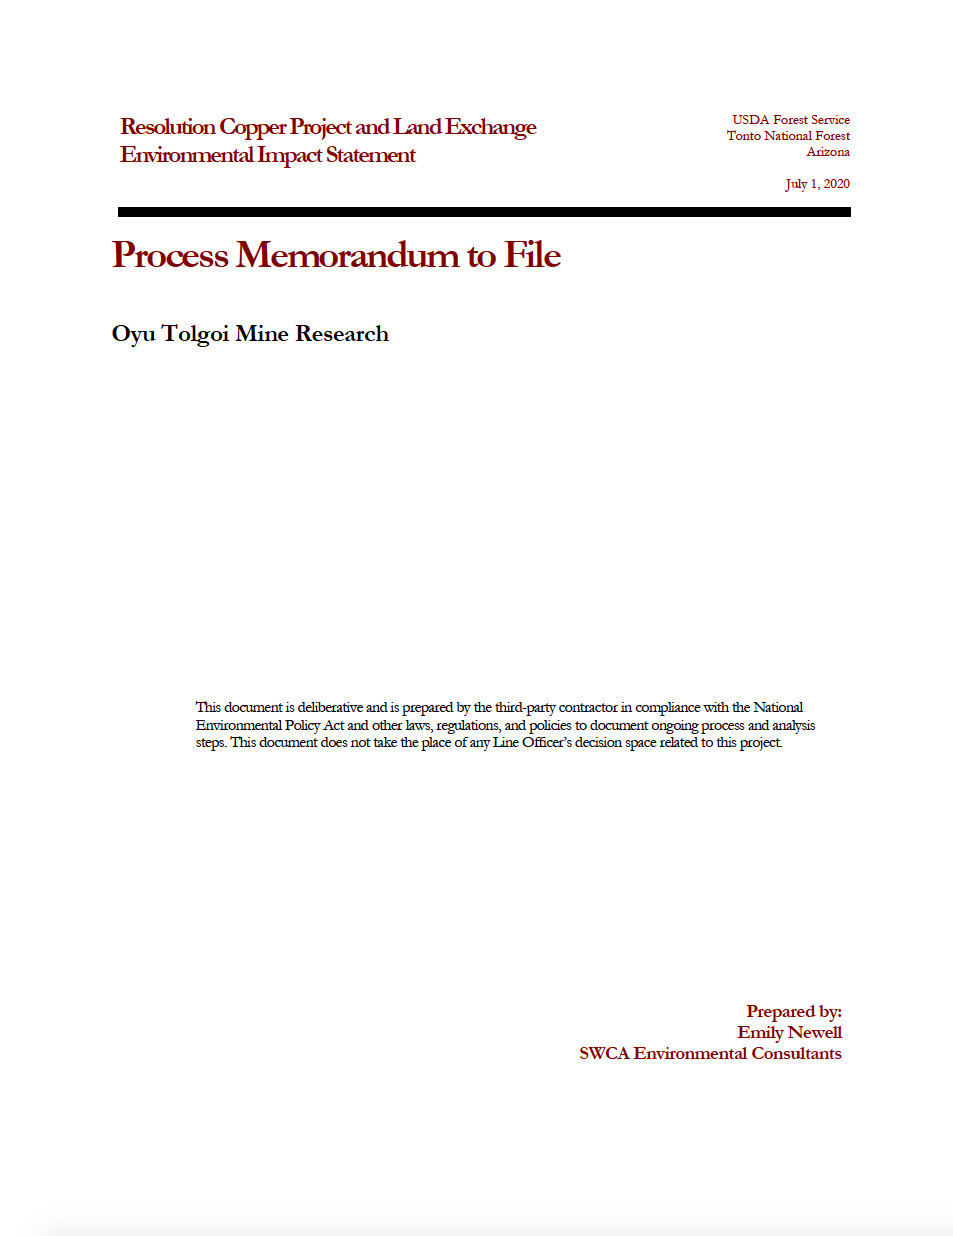 Thumbnail image of document cover: Oyu Tolgoi Mine Research